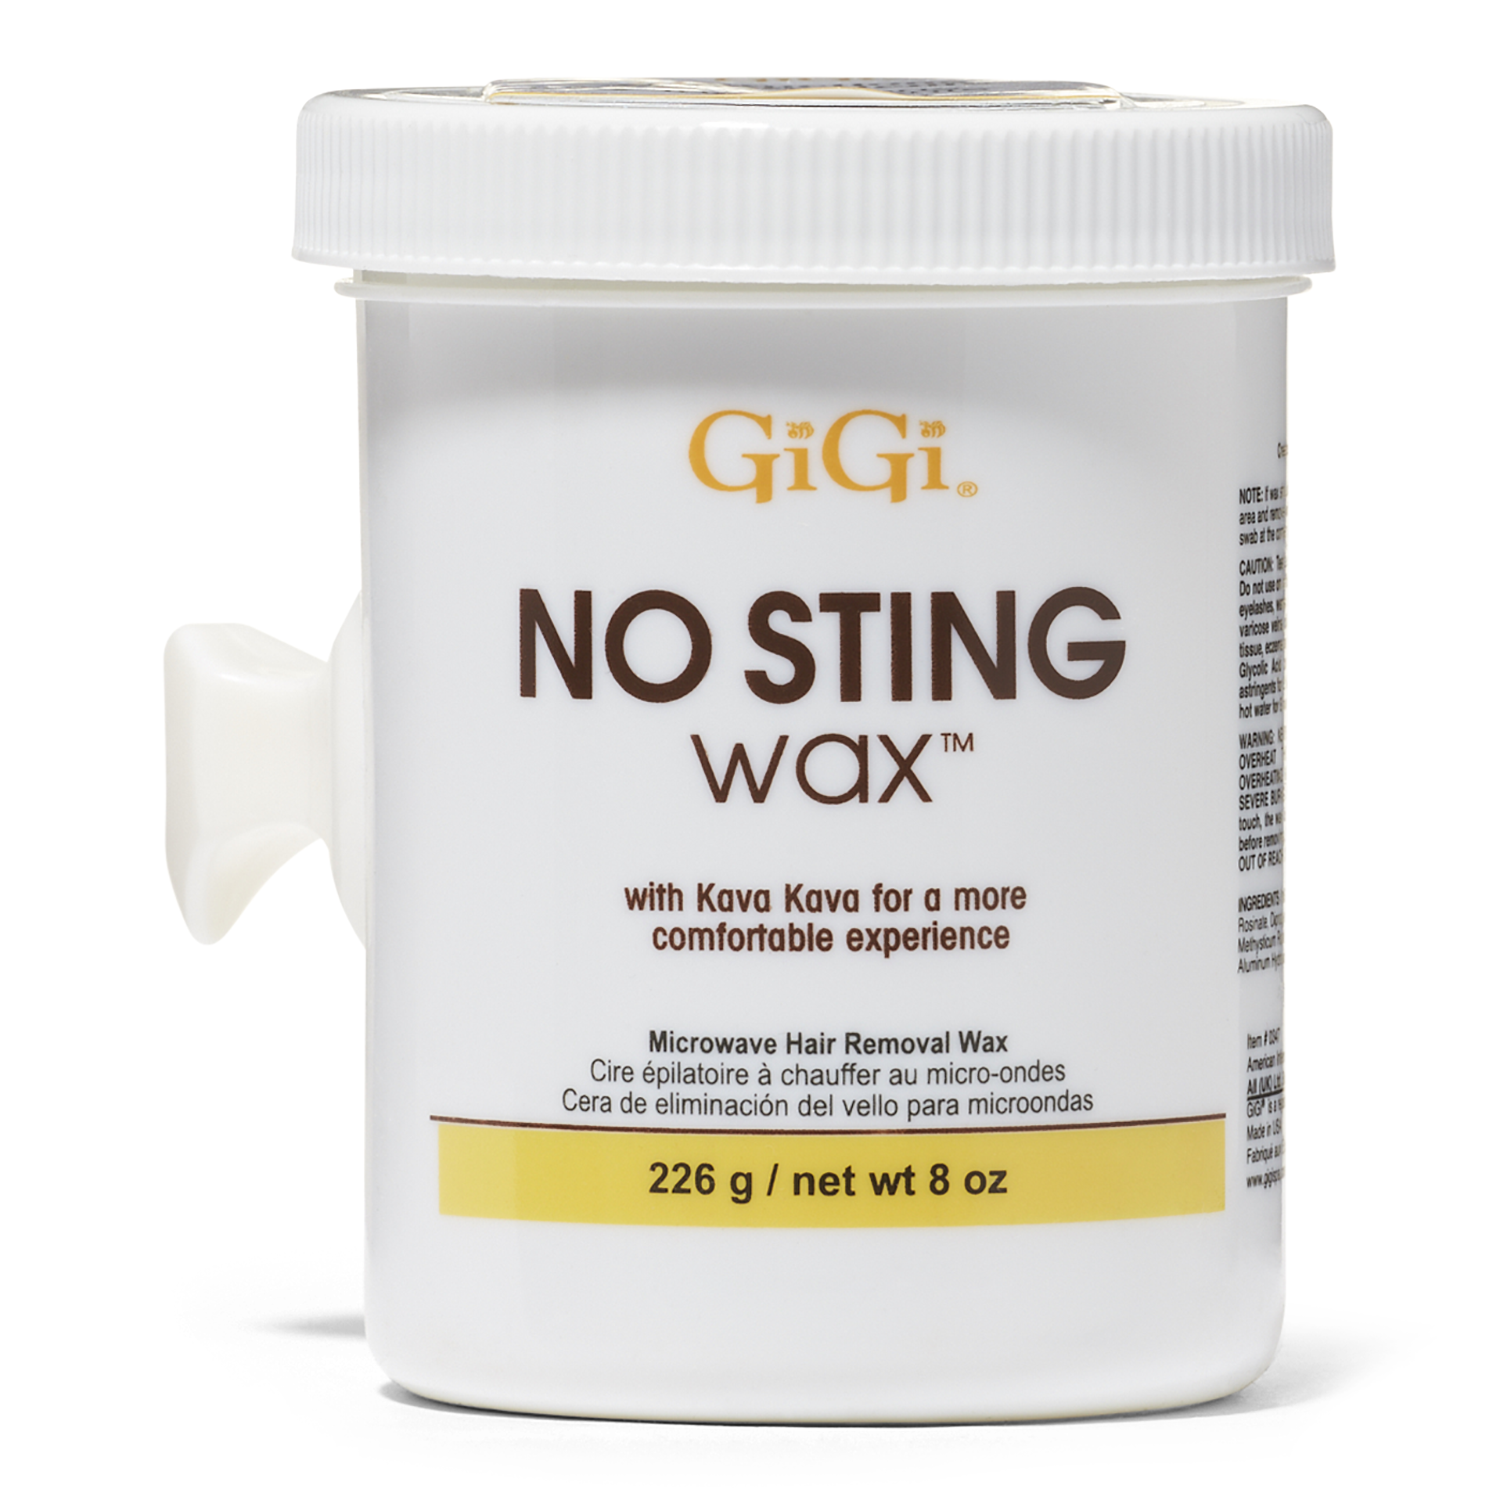 Sally Beauty coupon: No Sting Microwave Wax